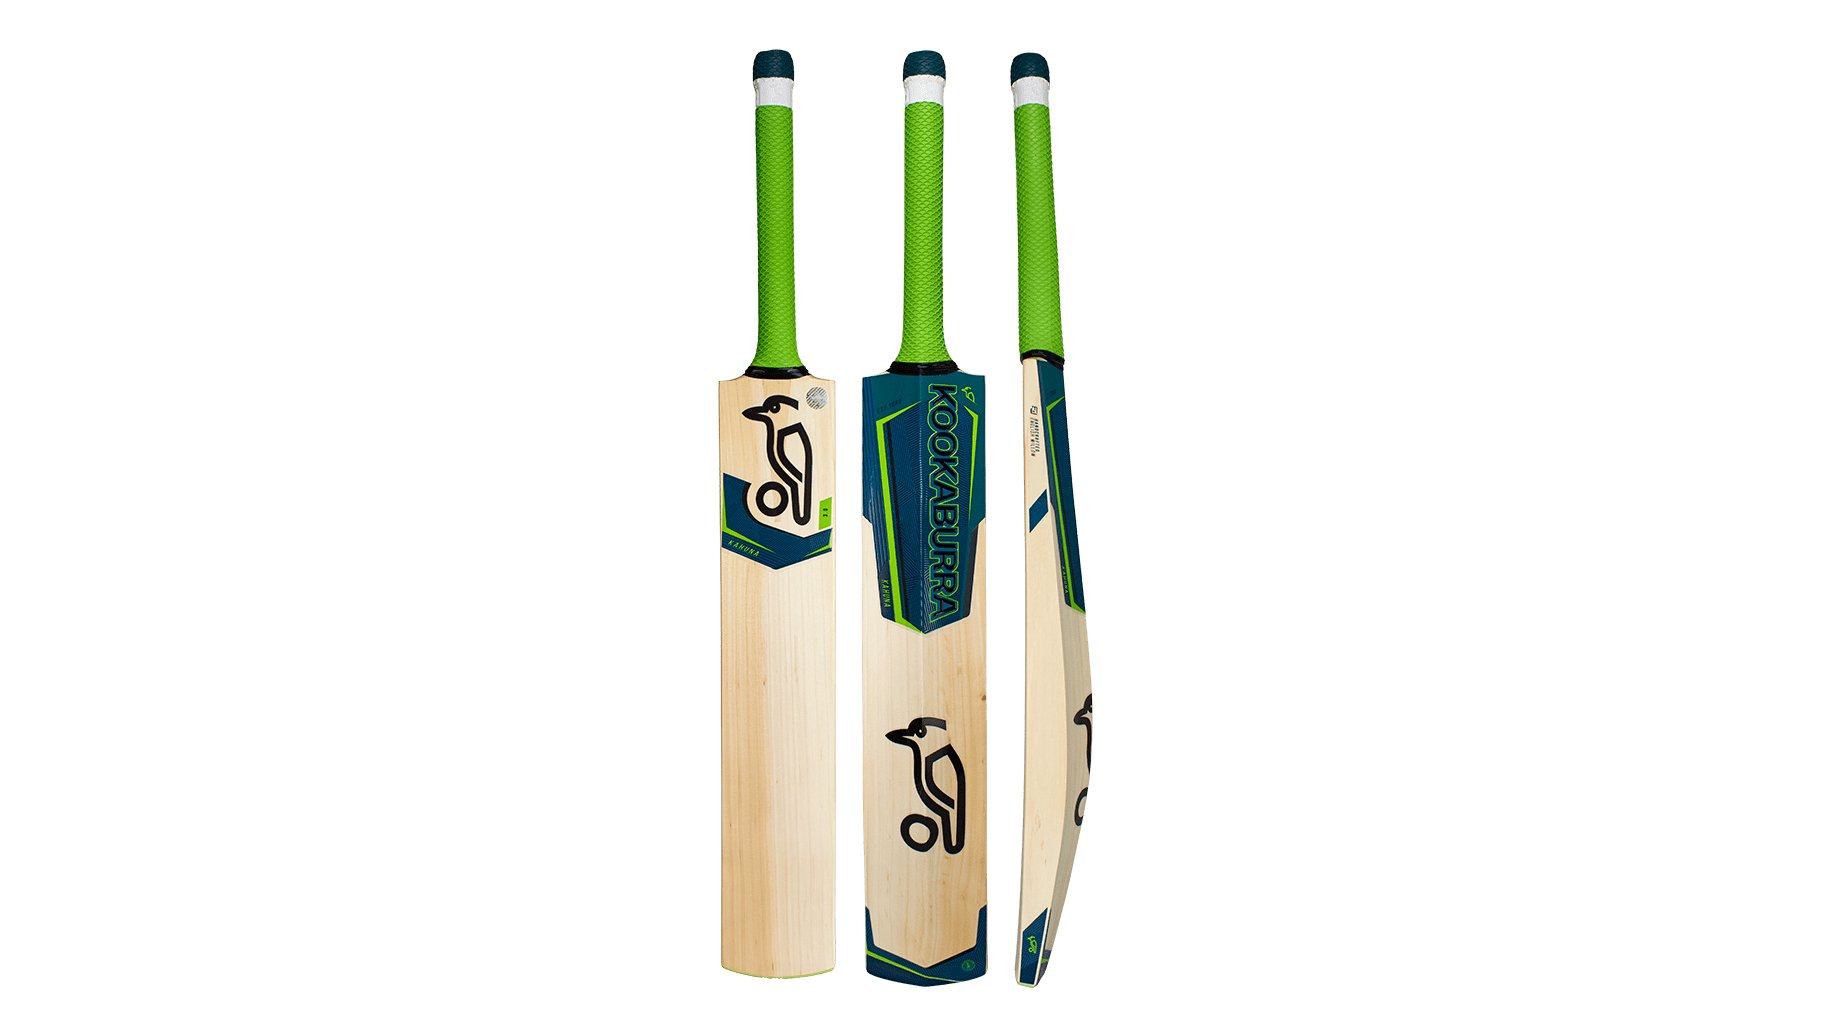 a365d10c43f Kookaburra s Kahuna range represents the best all-round option for the  everyday village cricketer. It s the perfect bat for those of us just  looking to turn ...